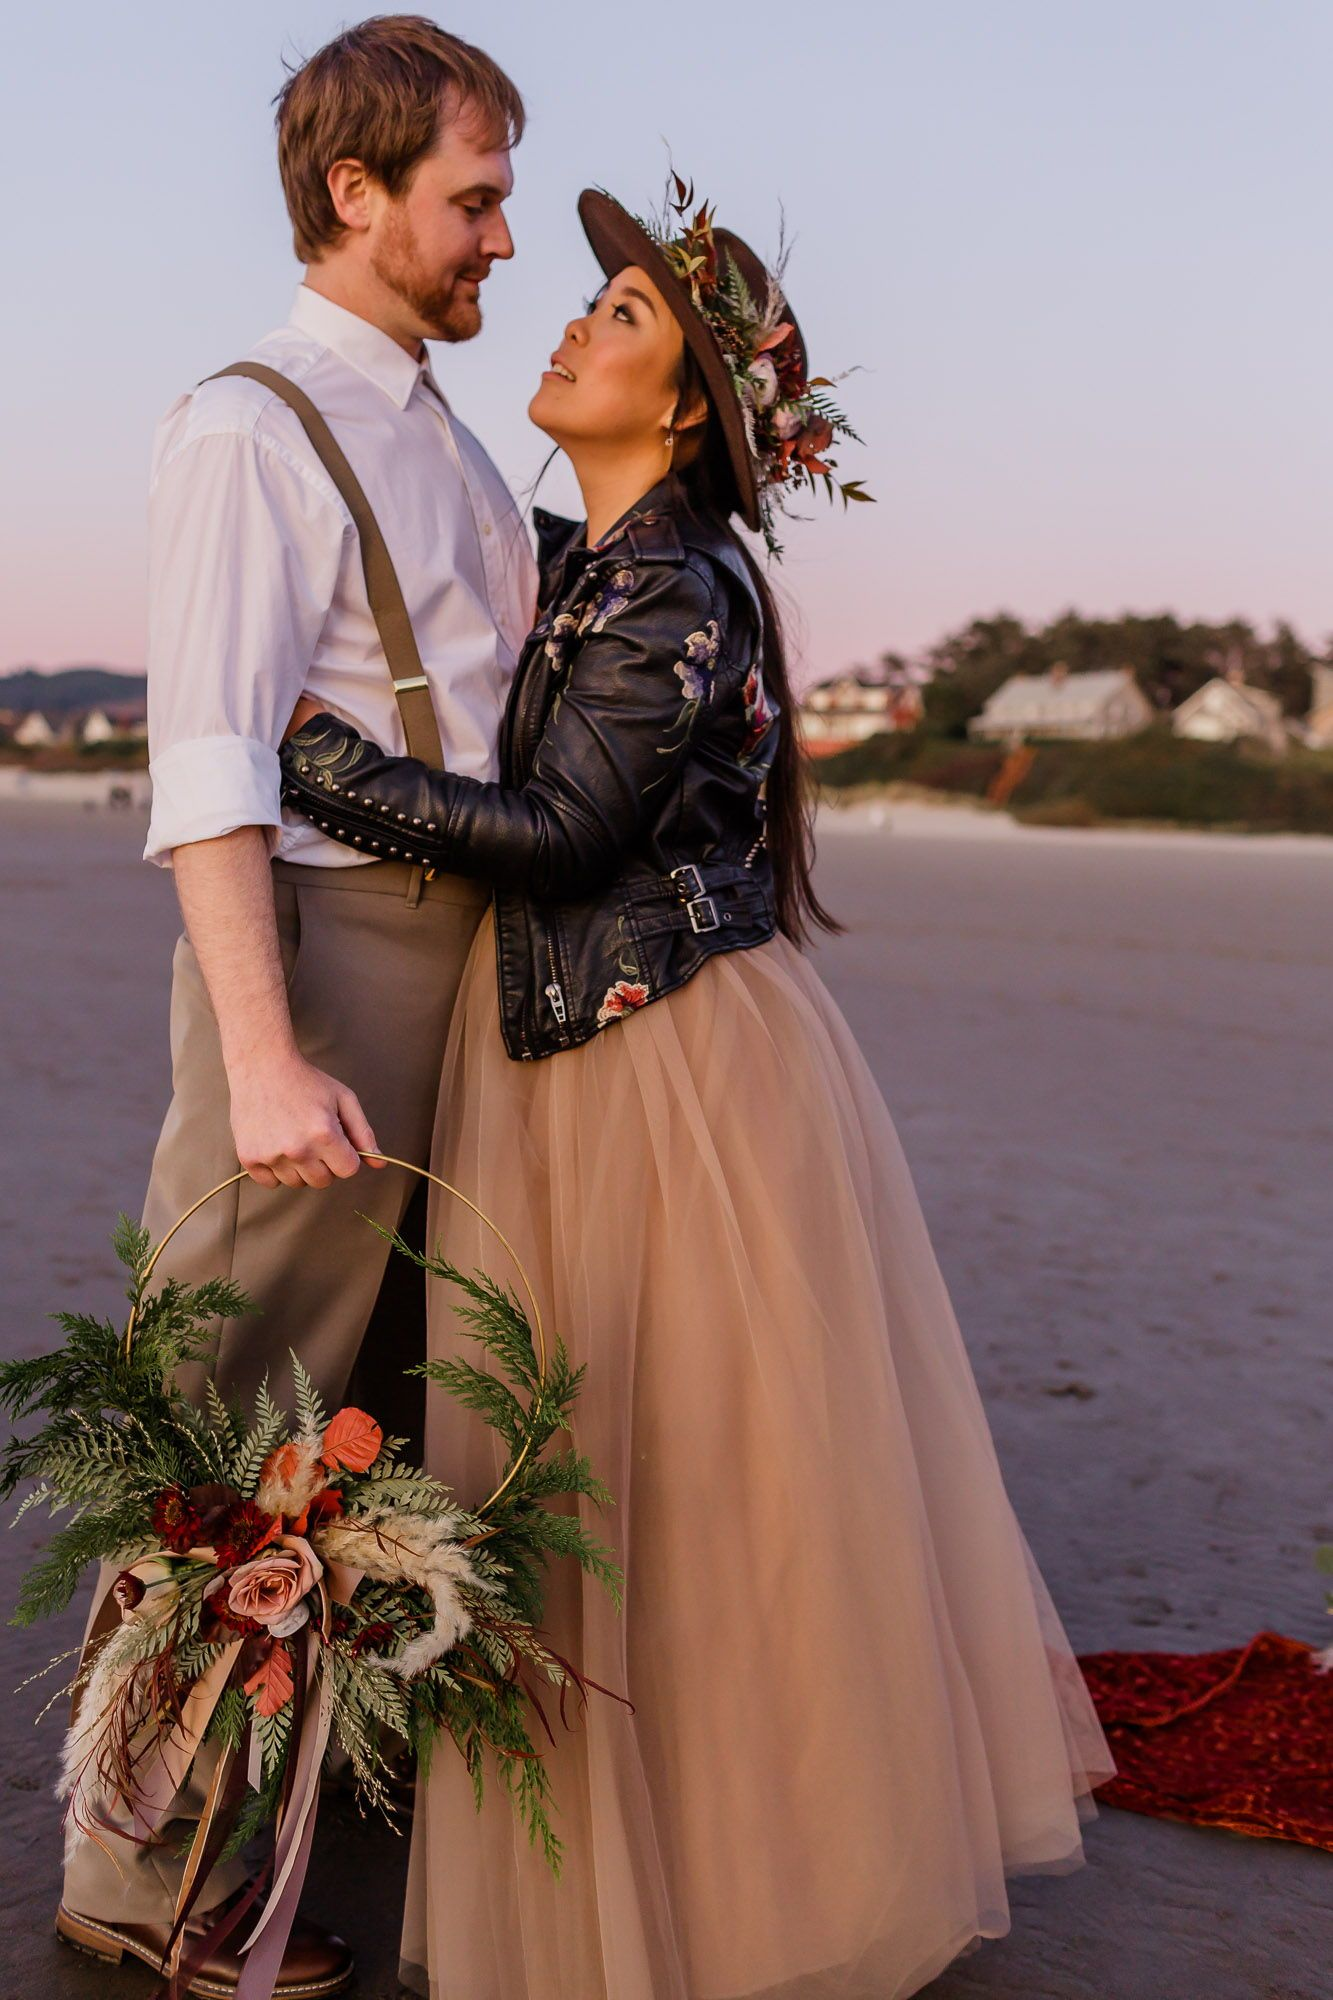 Styled Fall Elopement at Cannon Beach, OR. Perfect for those bride + grooms who want to go the untraditional route. . . . Bridal wreath and floral hat: Knot & Fern Hair and Makeup: Underwood Makeup Embroidered Jacket: Blank NYC Bridal tutu and velvet top: Opal and June